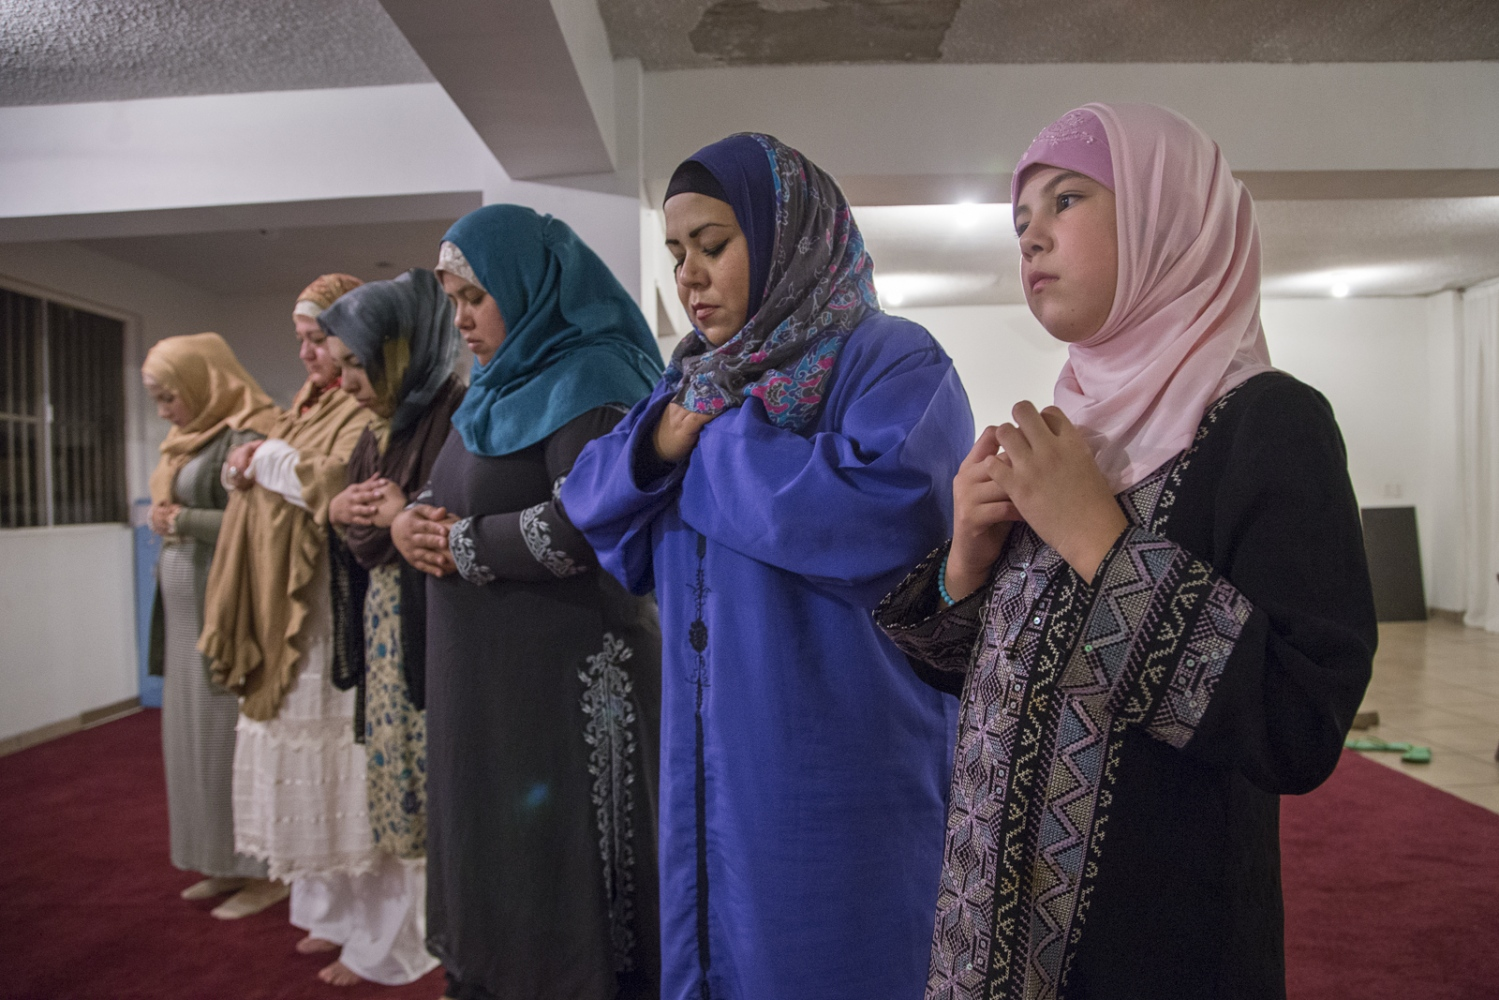 Nahomi castaneda and her mother Fatima pray with other sisters at the Mosque of Omar, in Playas de Tijuana, Mexico.